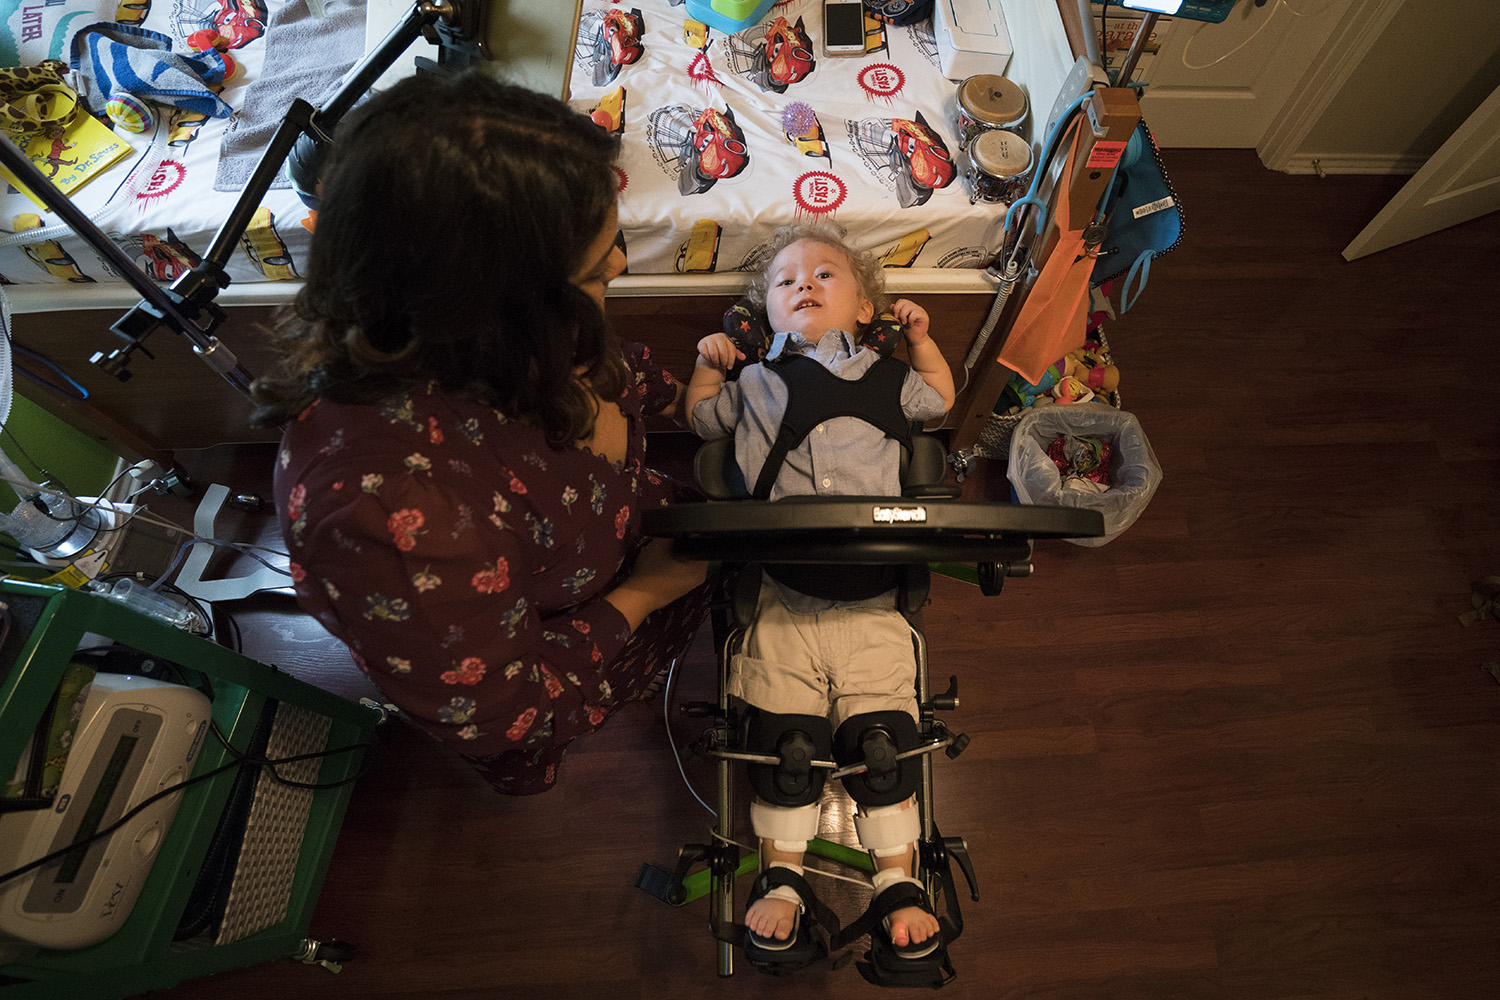 Kristen Resendez of Harlingen places her son, Jack, in a pediatric standing frame in their home in Harlingen, Texas. Jack has spinal muscular atrophy, costing him the ability to use most of his body.